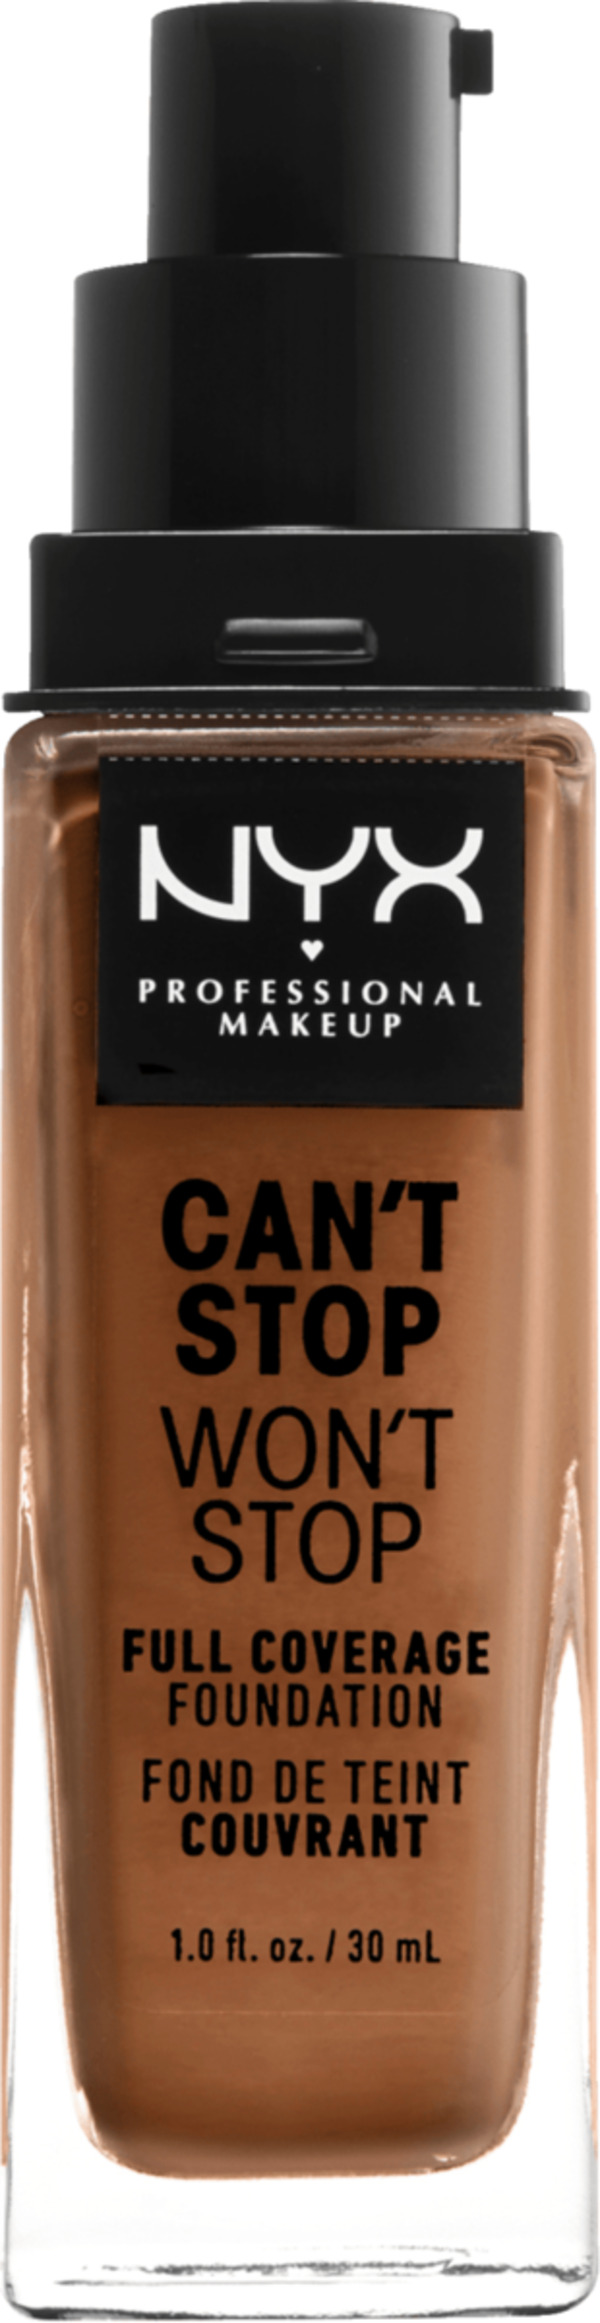 NYX PROFESSIONAL MAKEUP Make-up Can't Stop Won't Stop 24-Hour Foundation honey 15.8